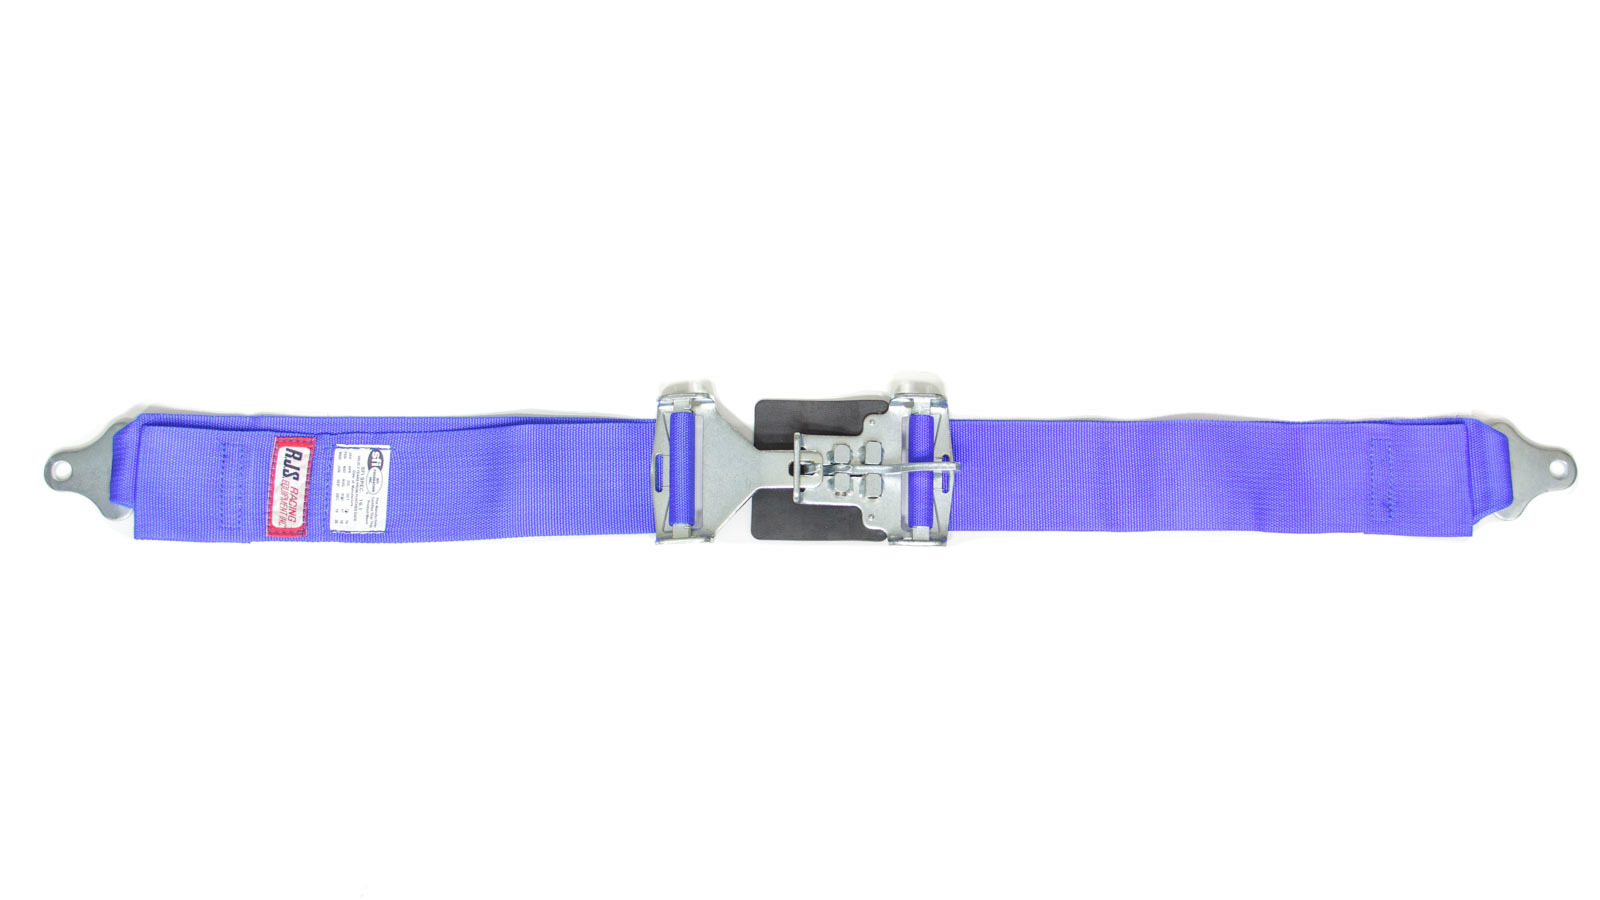 RJS Safety 15001903 Lap Harness, Latch and Link, SFI 16.1, 64 in Length, 3 in Width, Pull Down Adjust, Bolt-On, Blue, Each